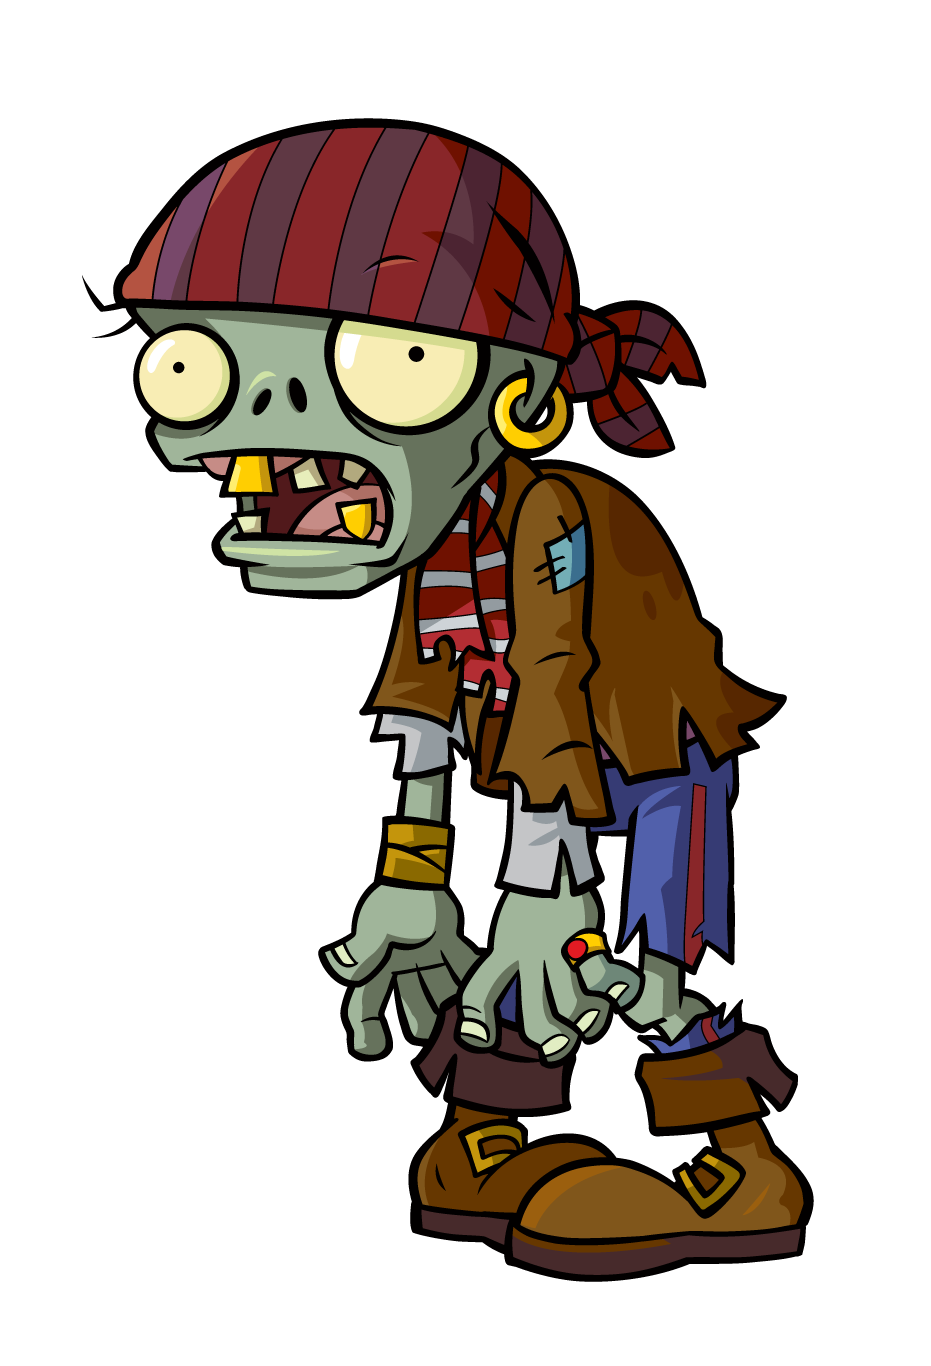 Plants vs zombies zombie png. Image pvz pirate copy